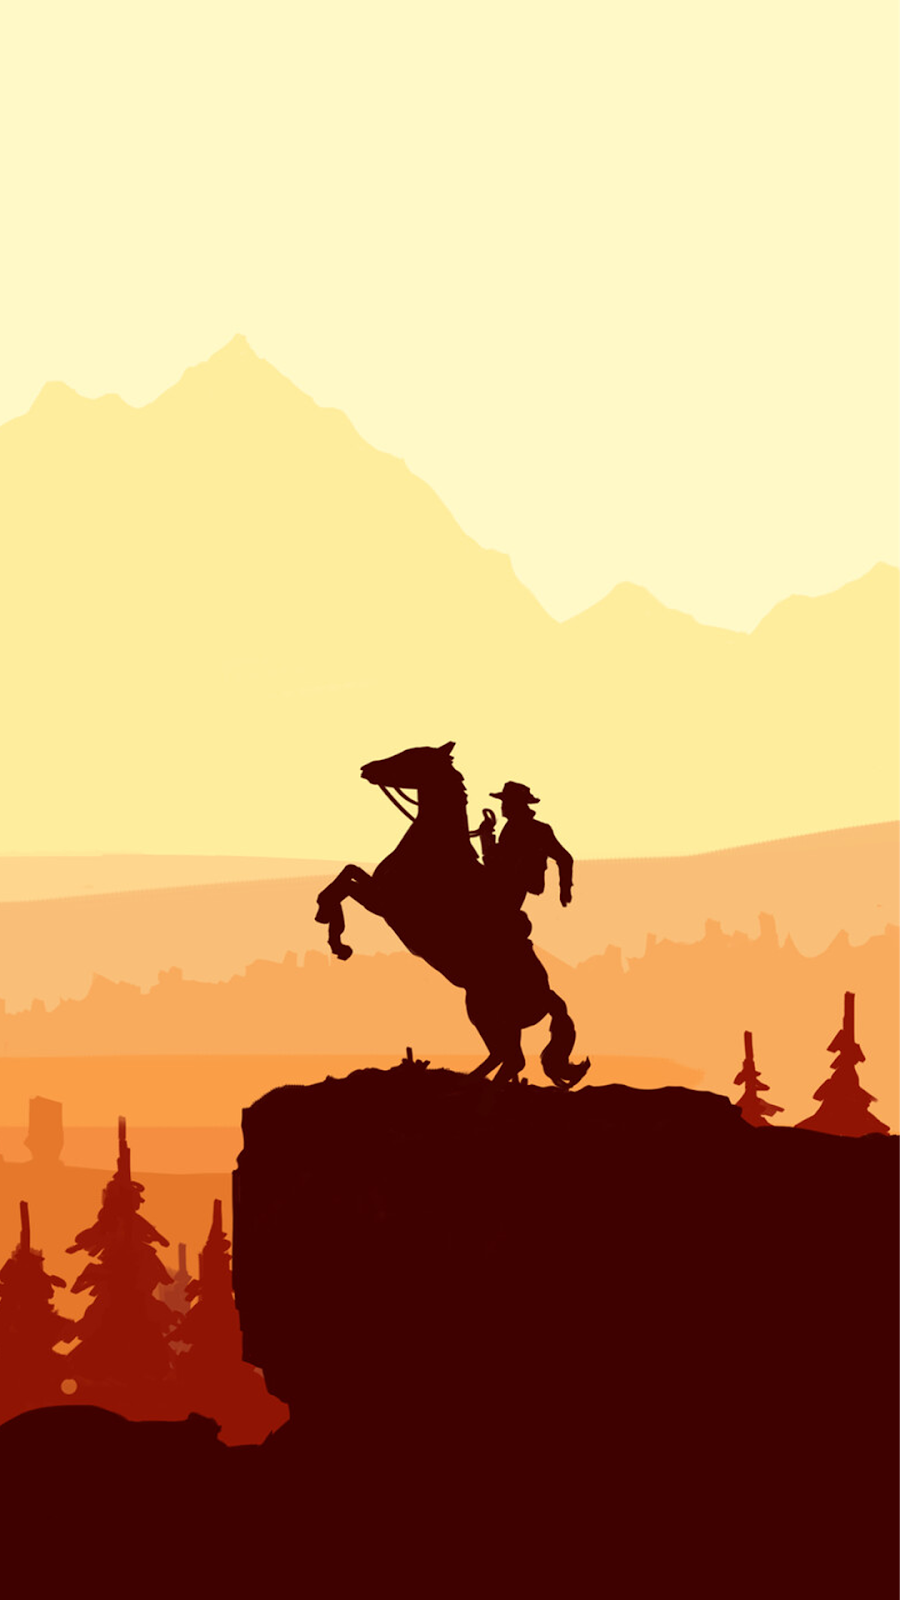 Red Dead Redemption Phone Wallpapers Collection 31 Cool Wallpapers Heroscreen Cc Red Dead Redemption Artwork Red Dead Redemption Red Dead Redemption Art